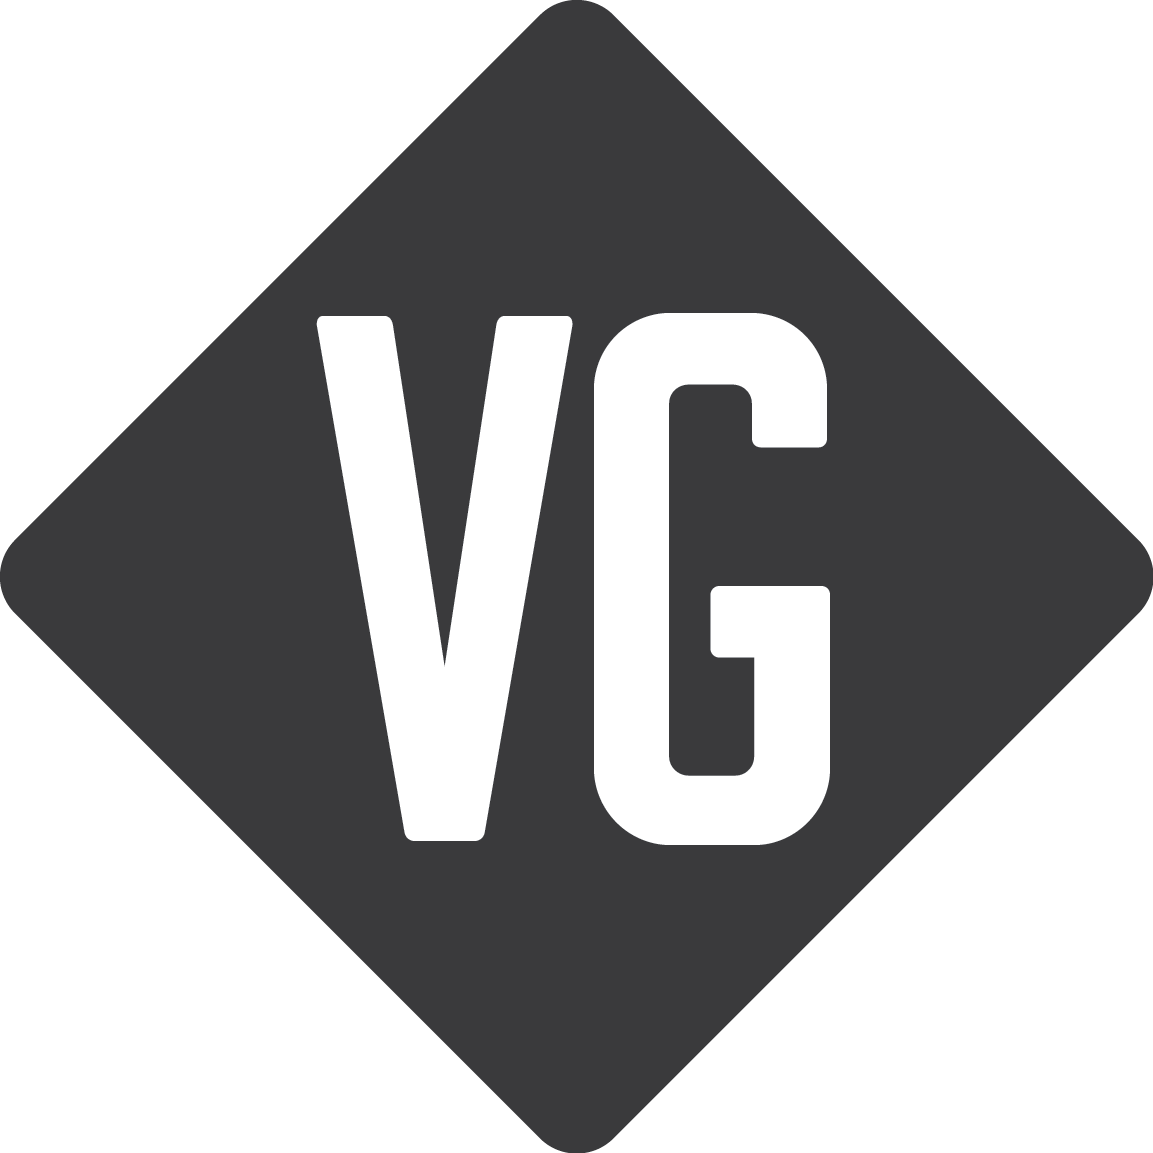 t5_vg_icon_red